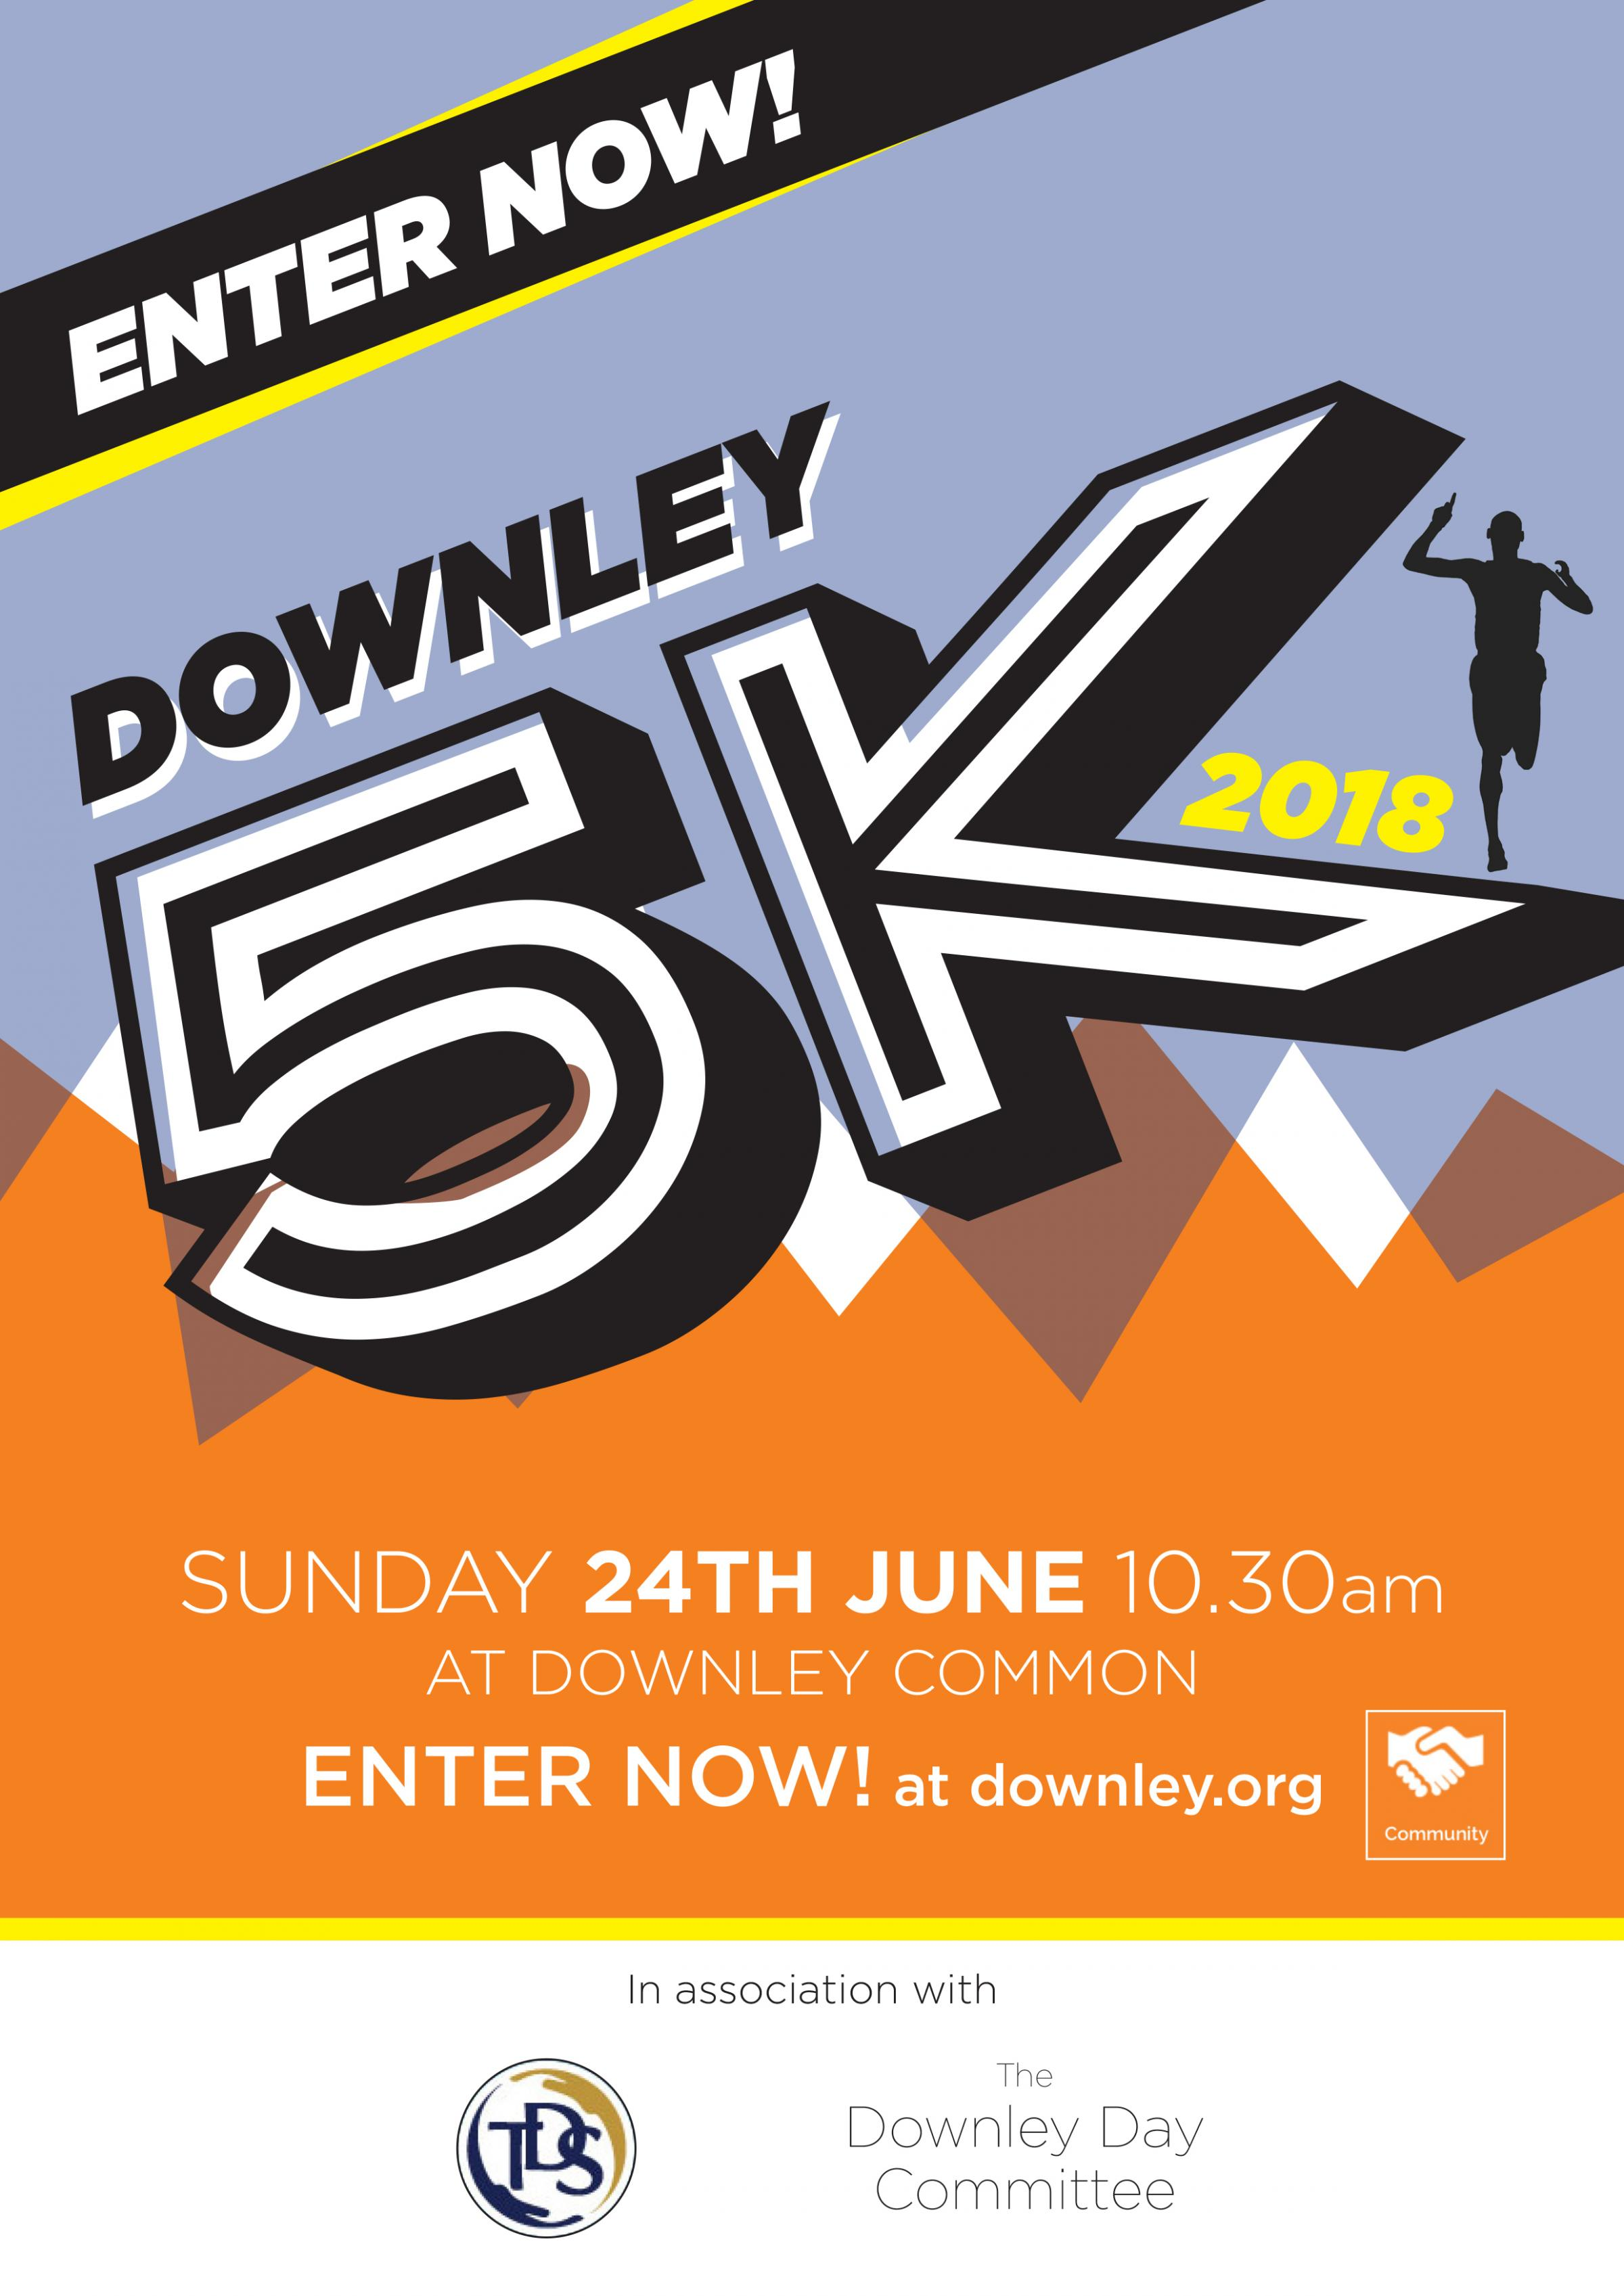 Downley 5k fun run